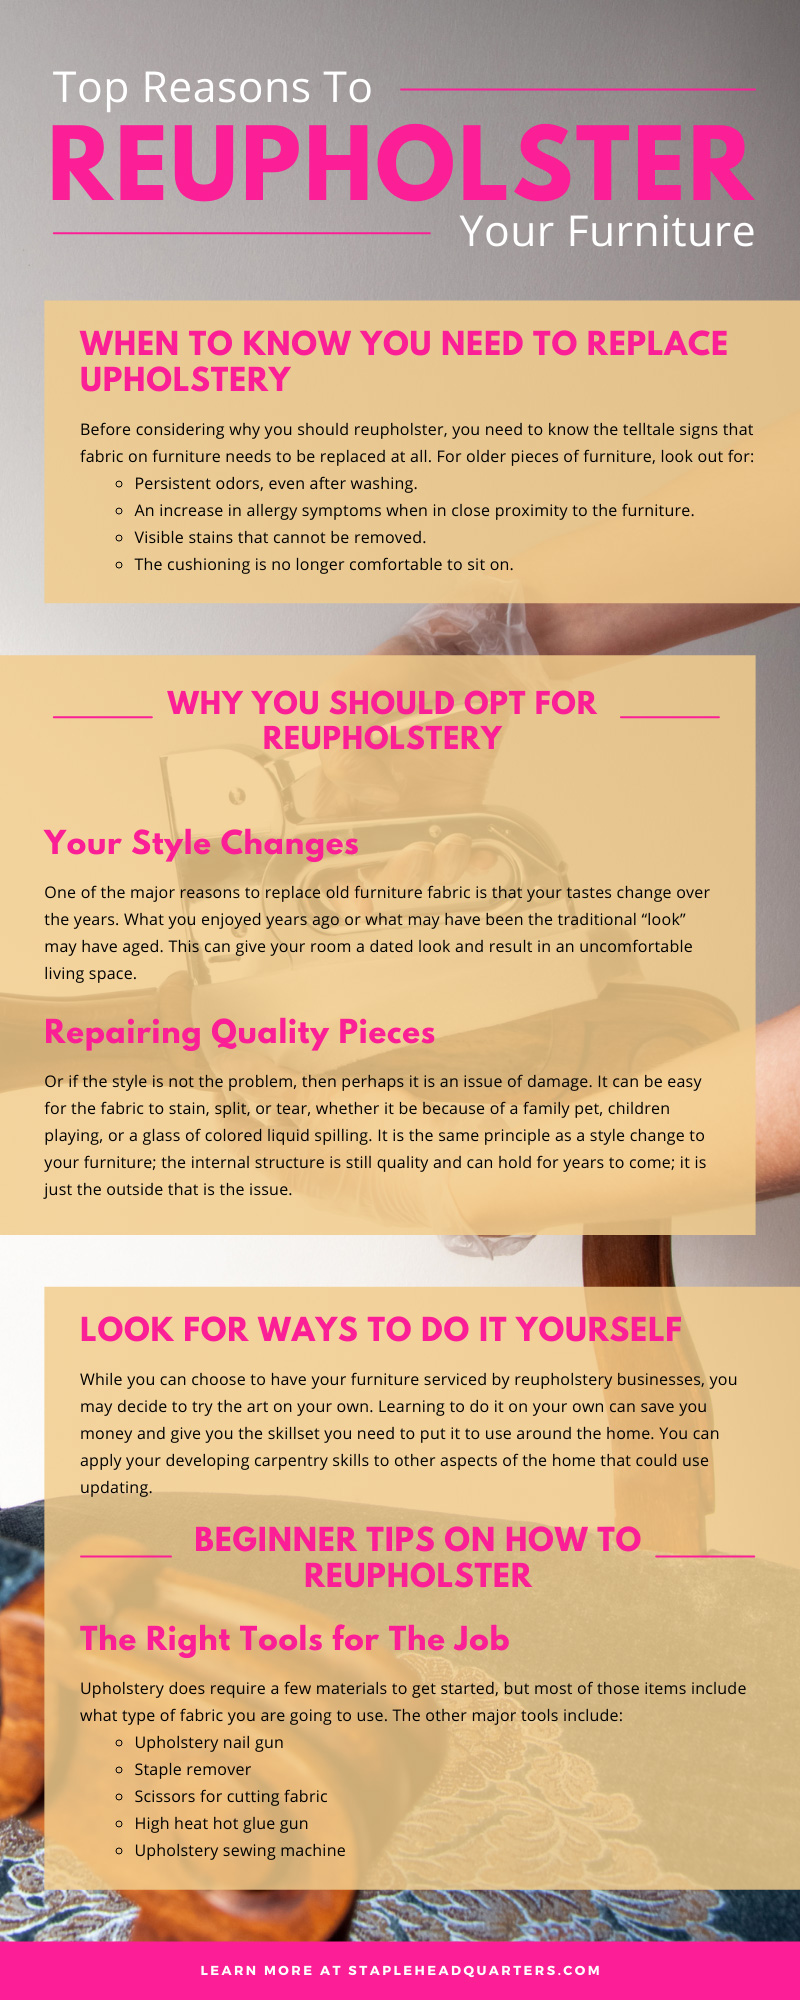 Top Reasons To Reupholster Your Furniture